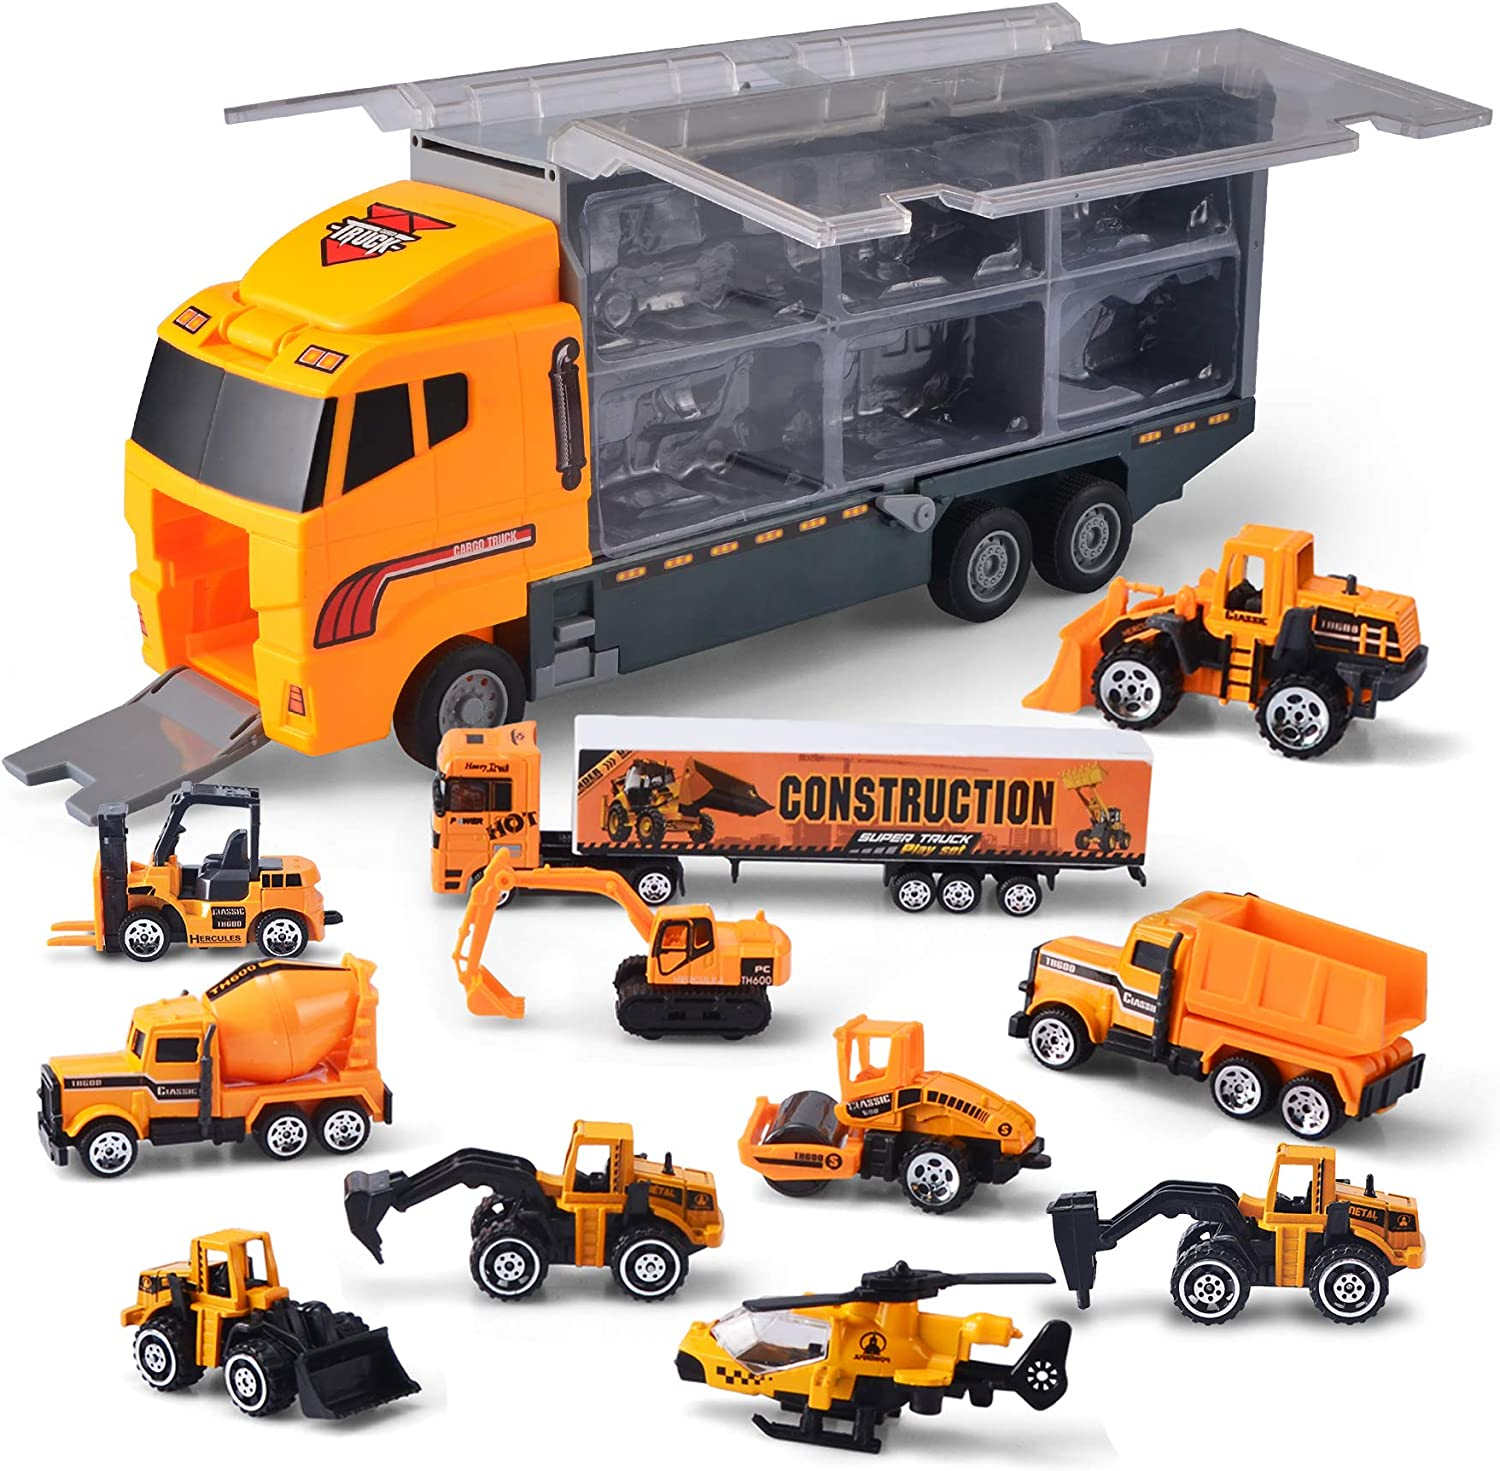 Jouet camion transport Carrycase remorque voiture collection Carrier Case Cars Playset